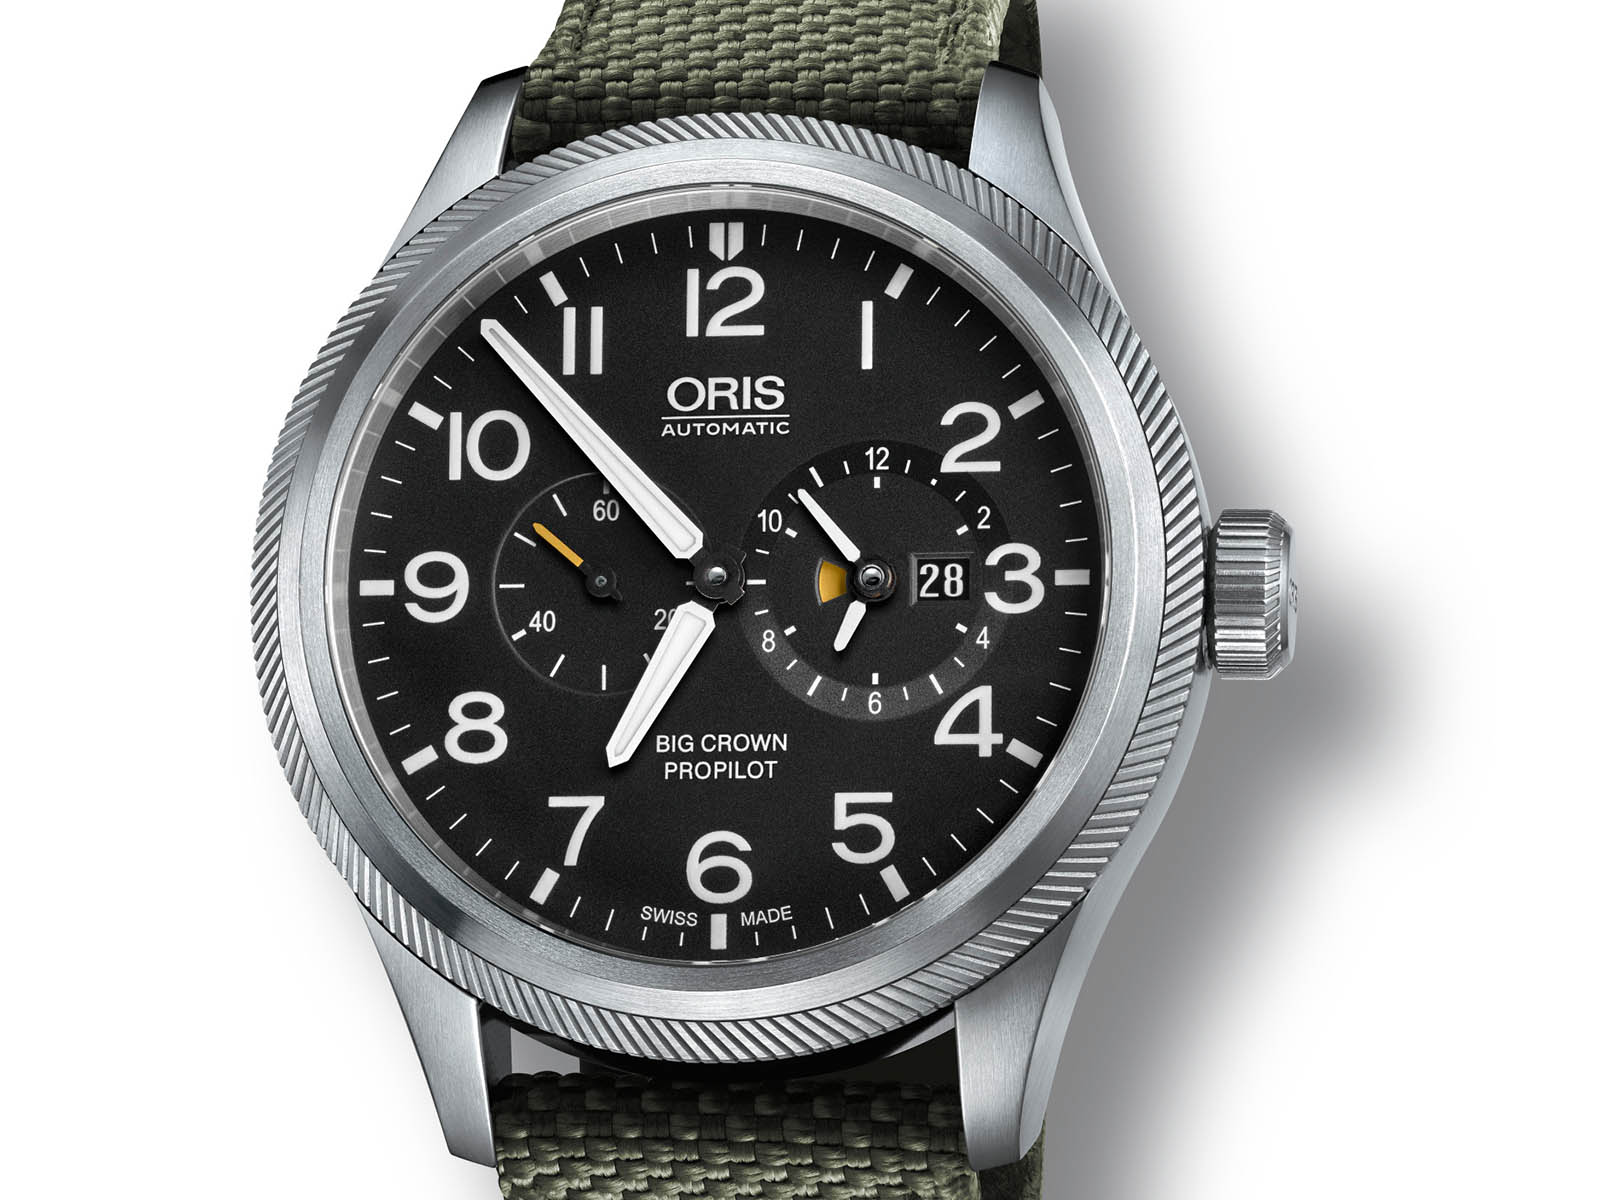 Oris-big-crown-propilot-worldtimer-4.jpg